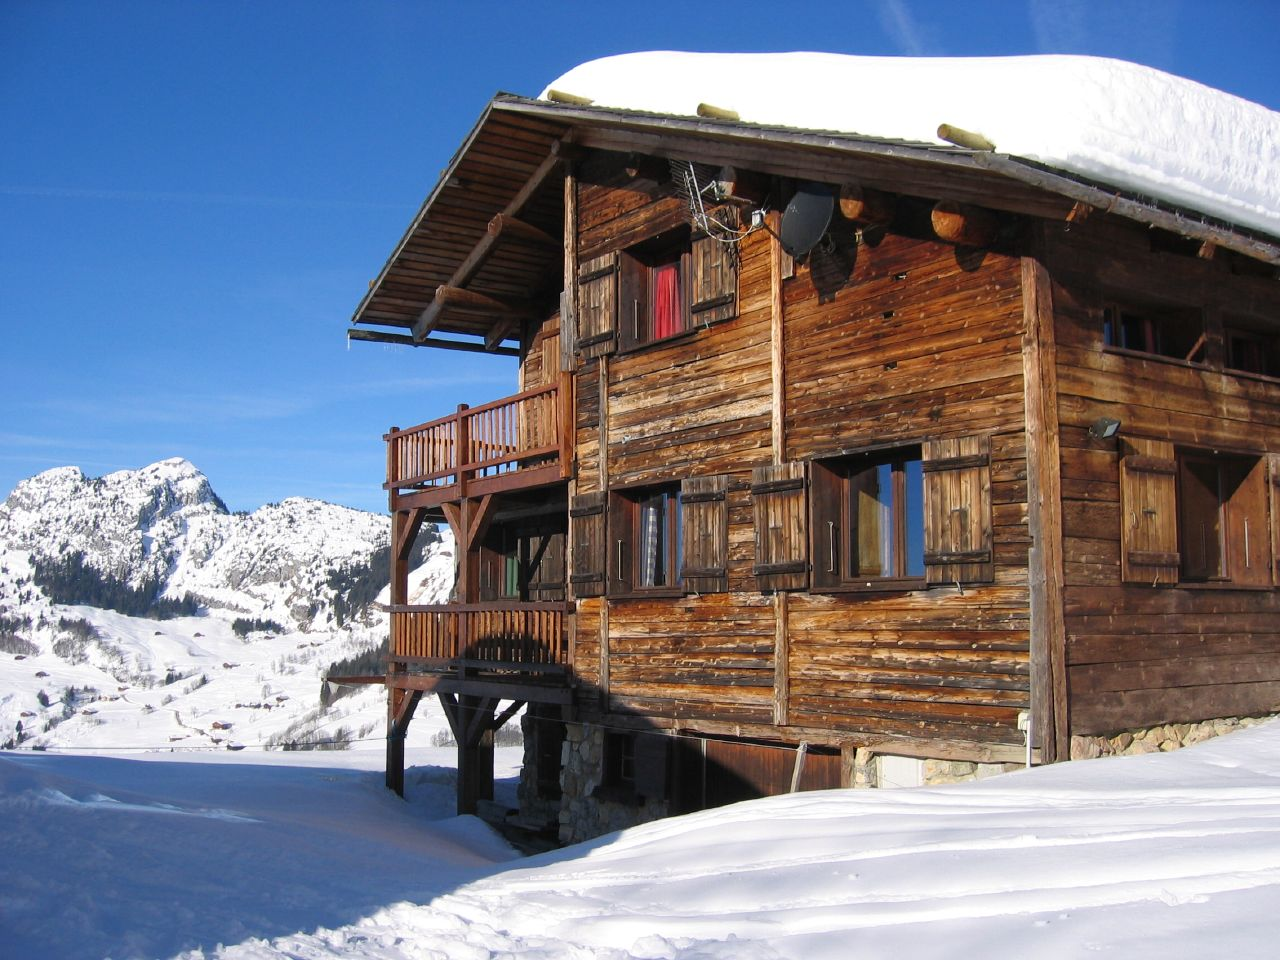 One of the best places to take winter European breaks is at an old style ski chalet in the French Alps ... photo by CC user timackroyd on Flickr